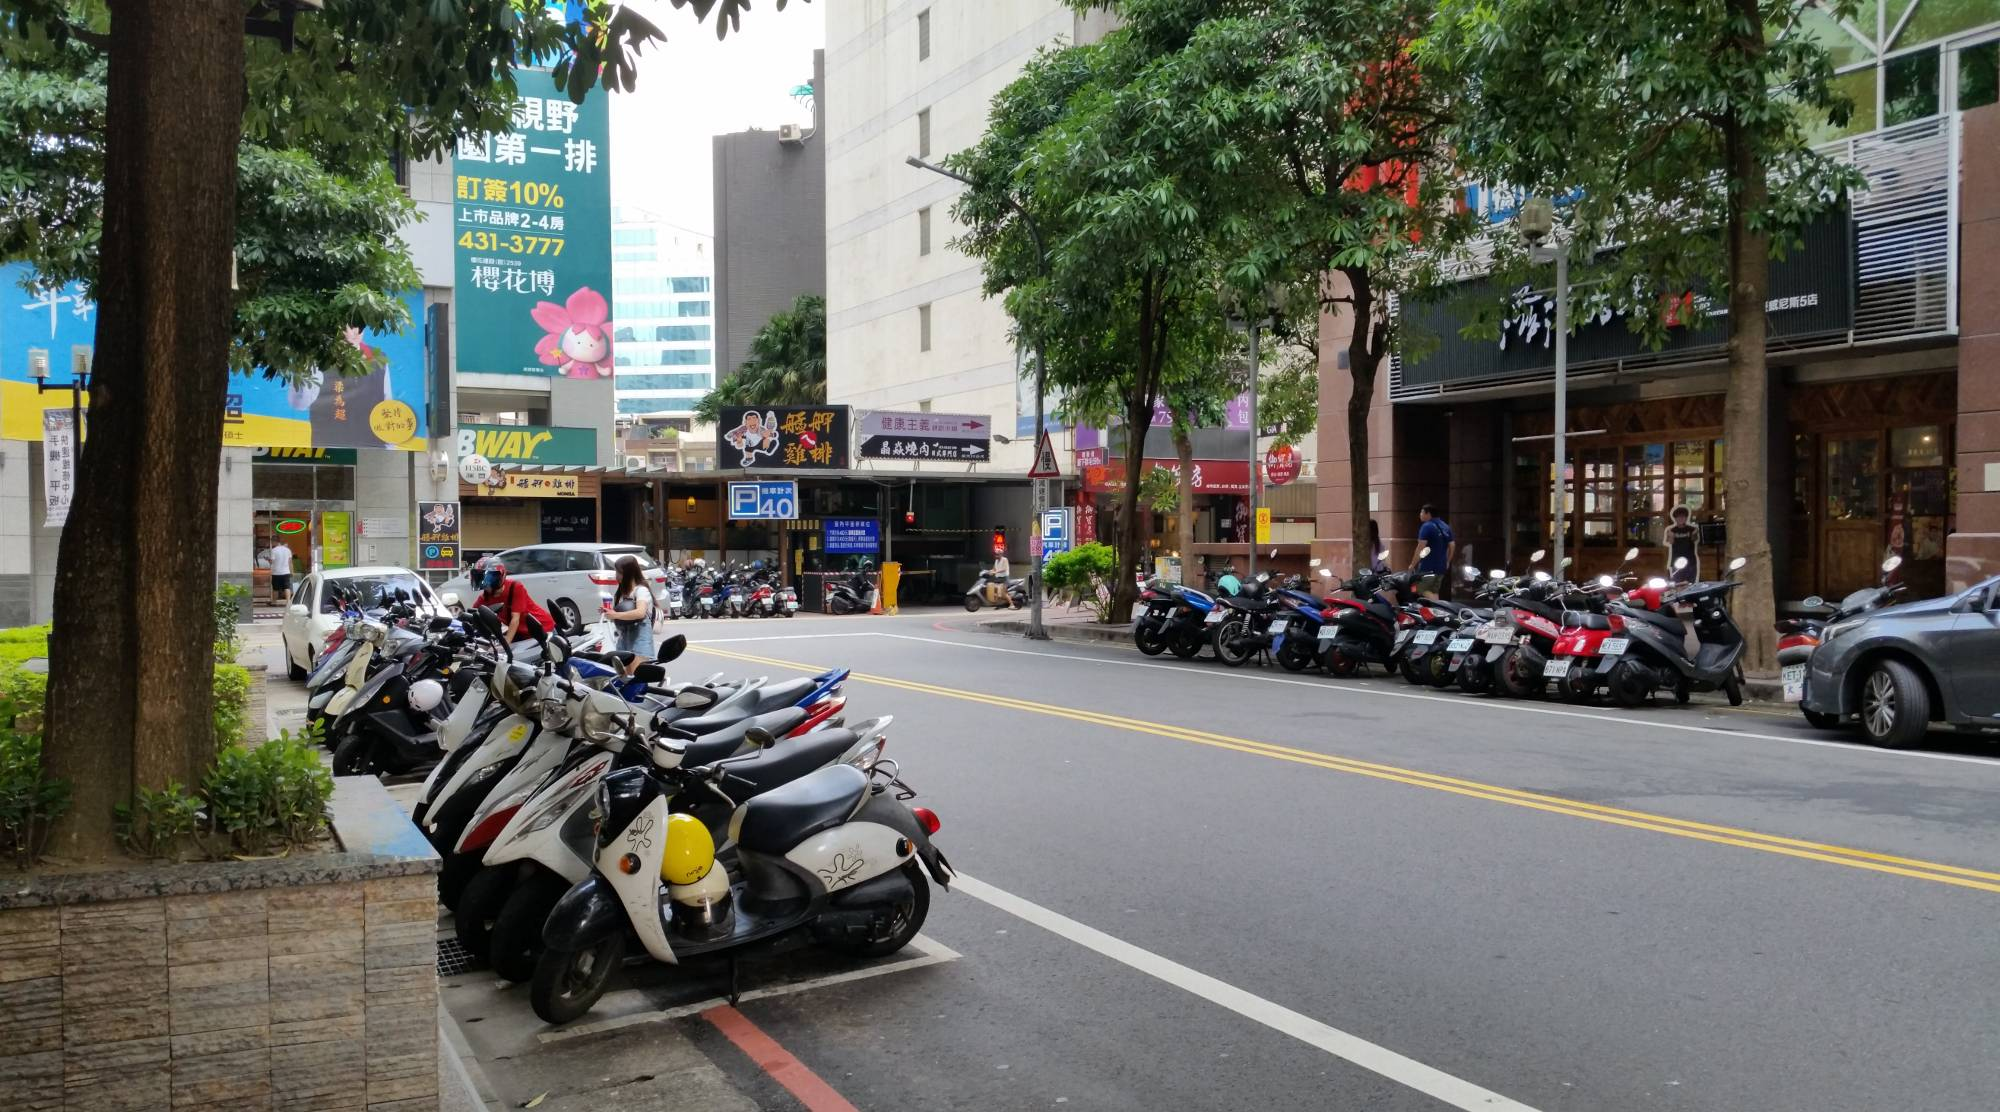 on-street scooter parking